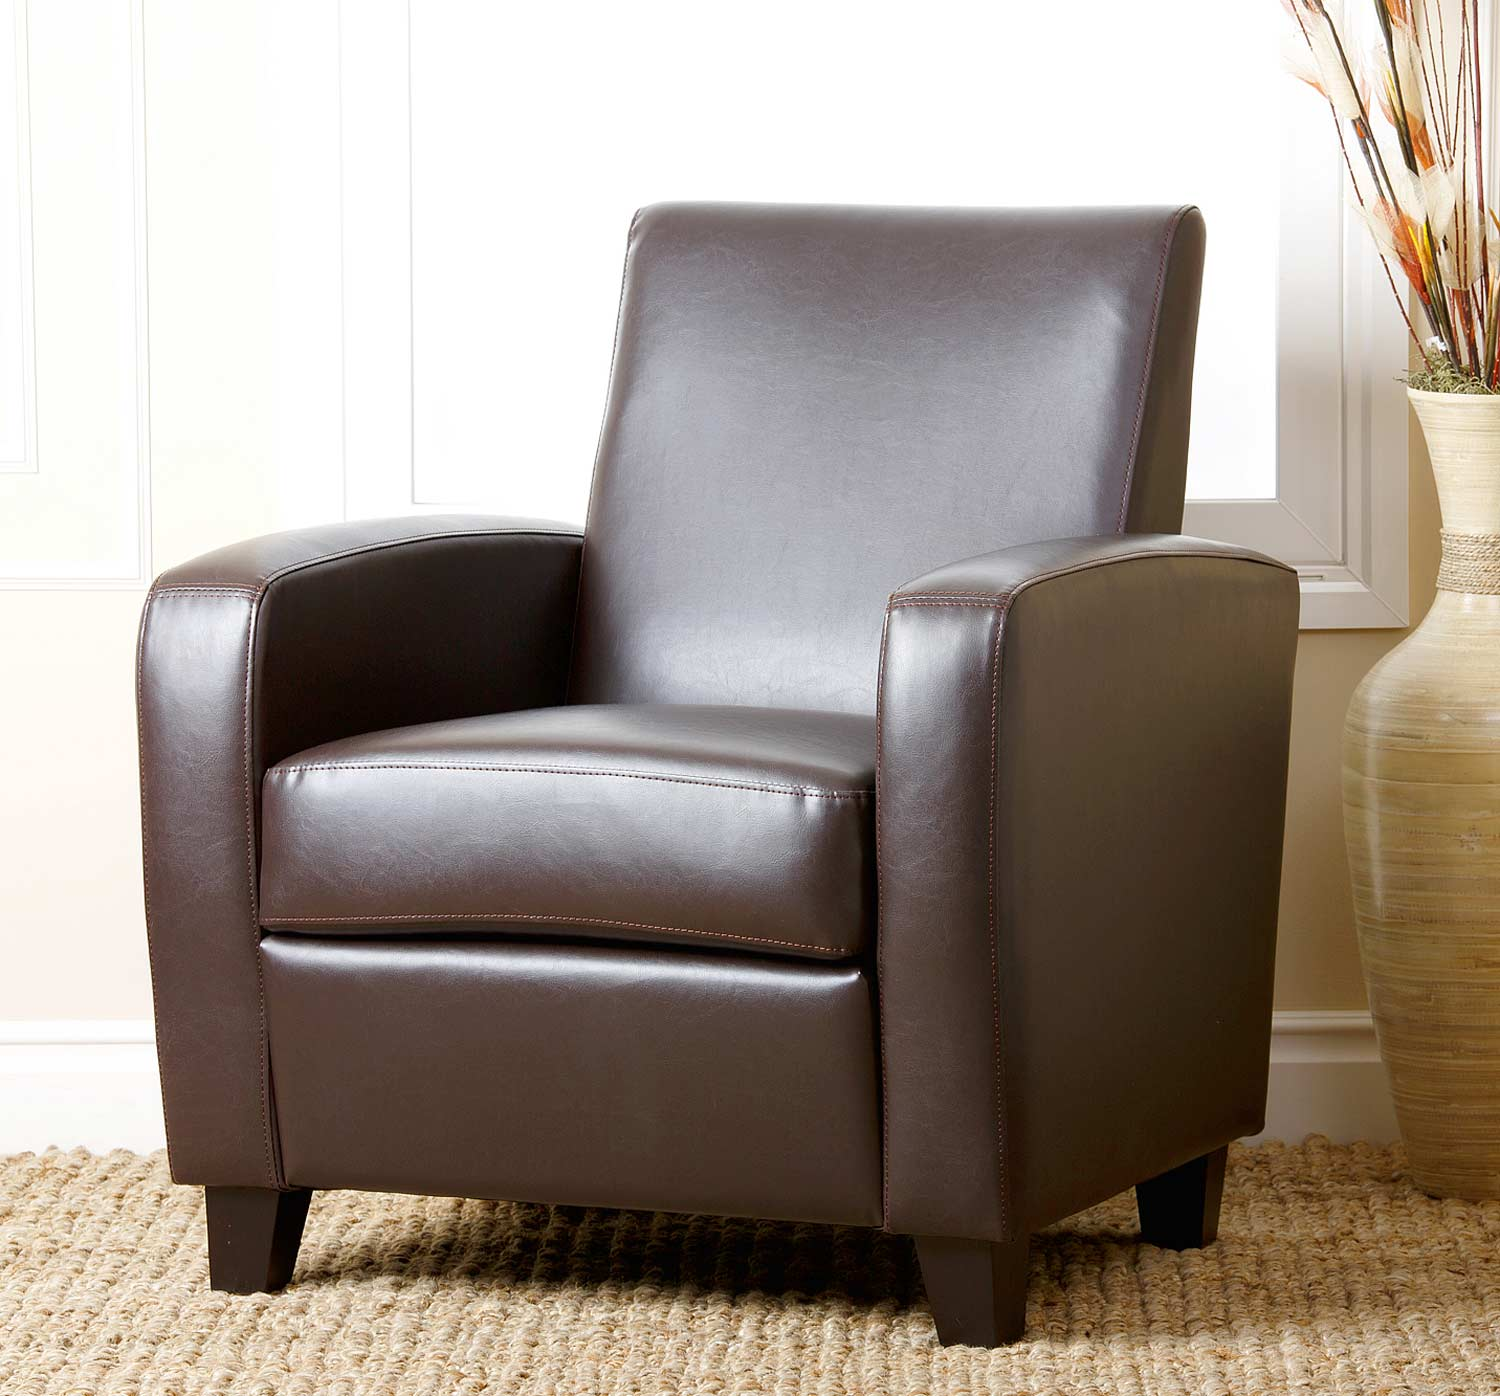 Abbyson Living Mercer Bonded Leather Club Chair - Brown